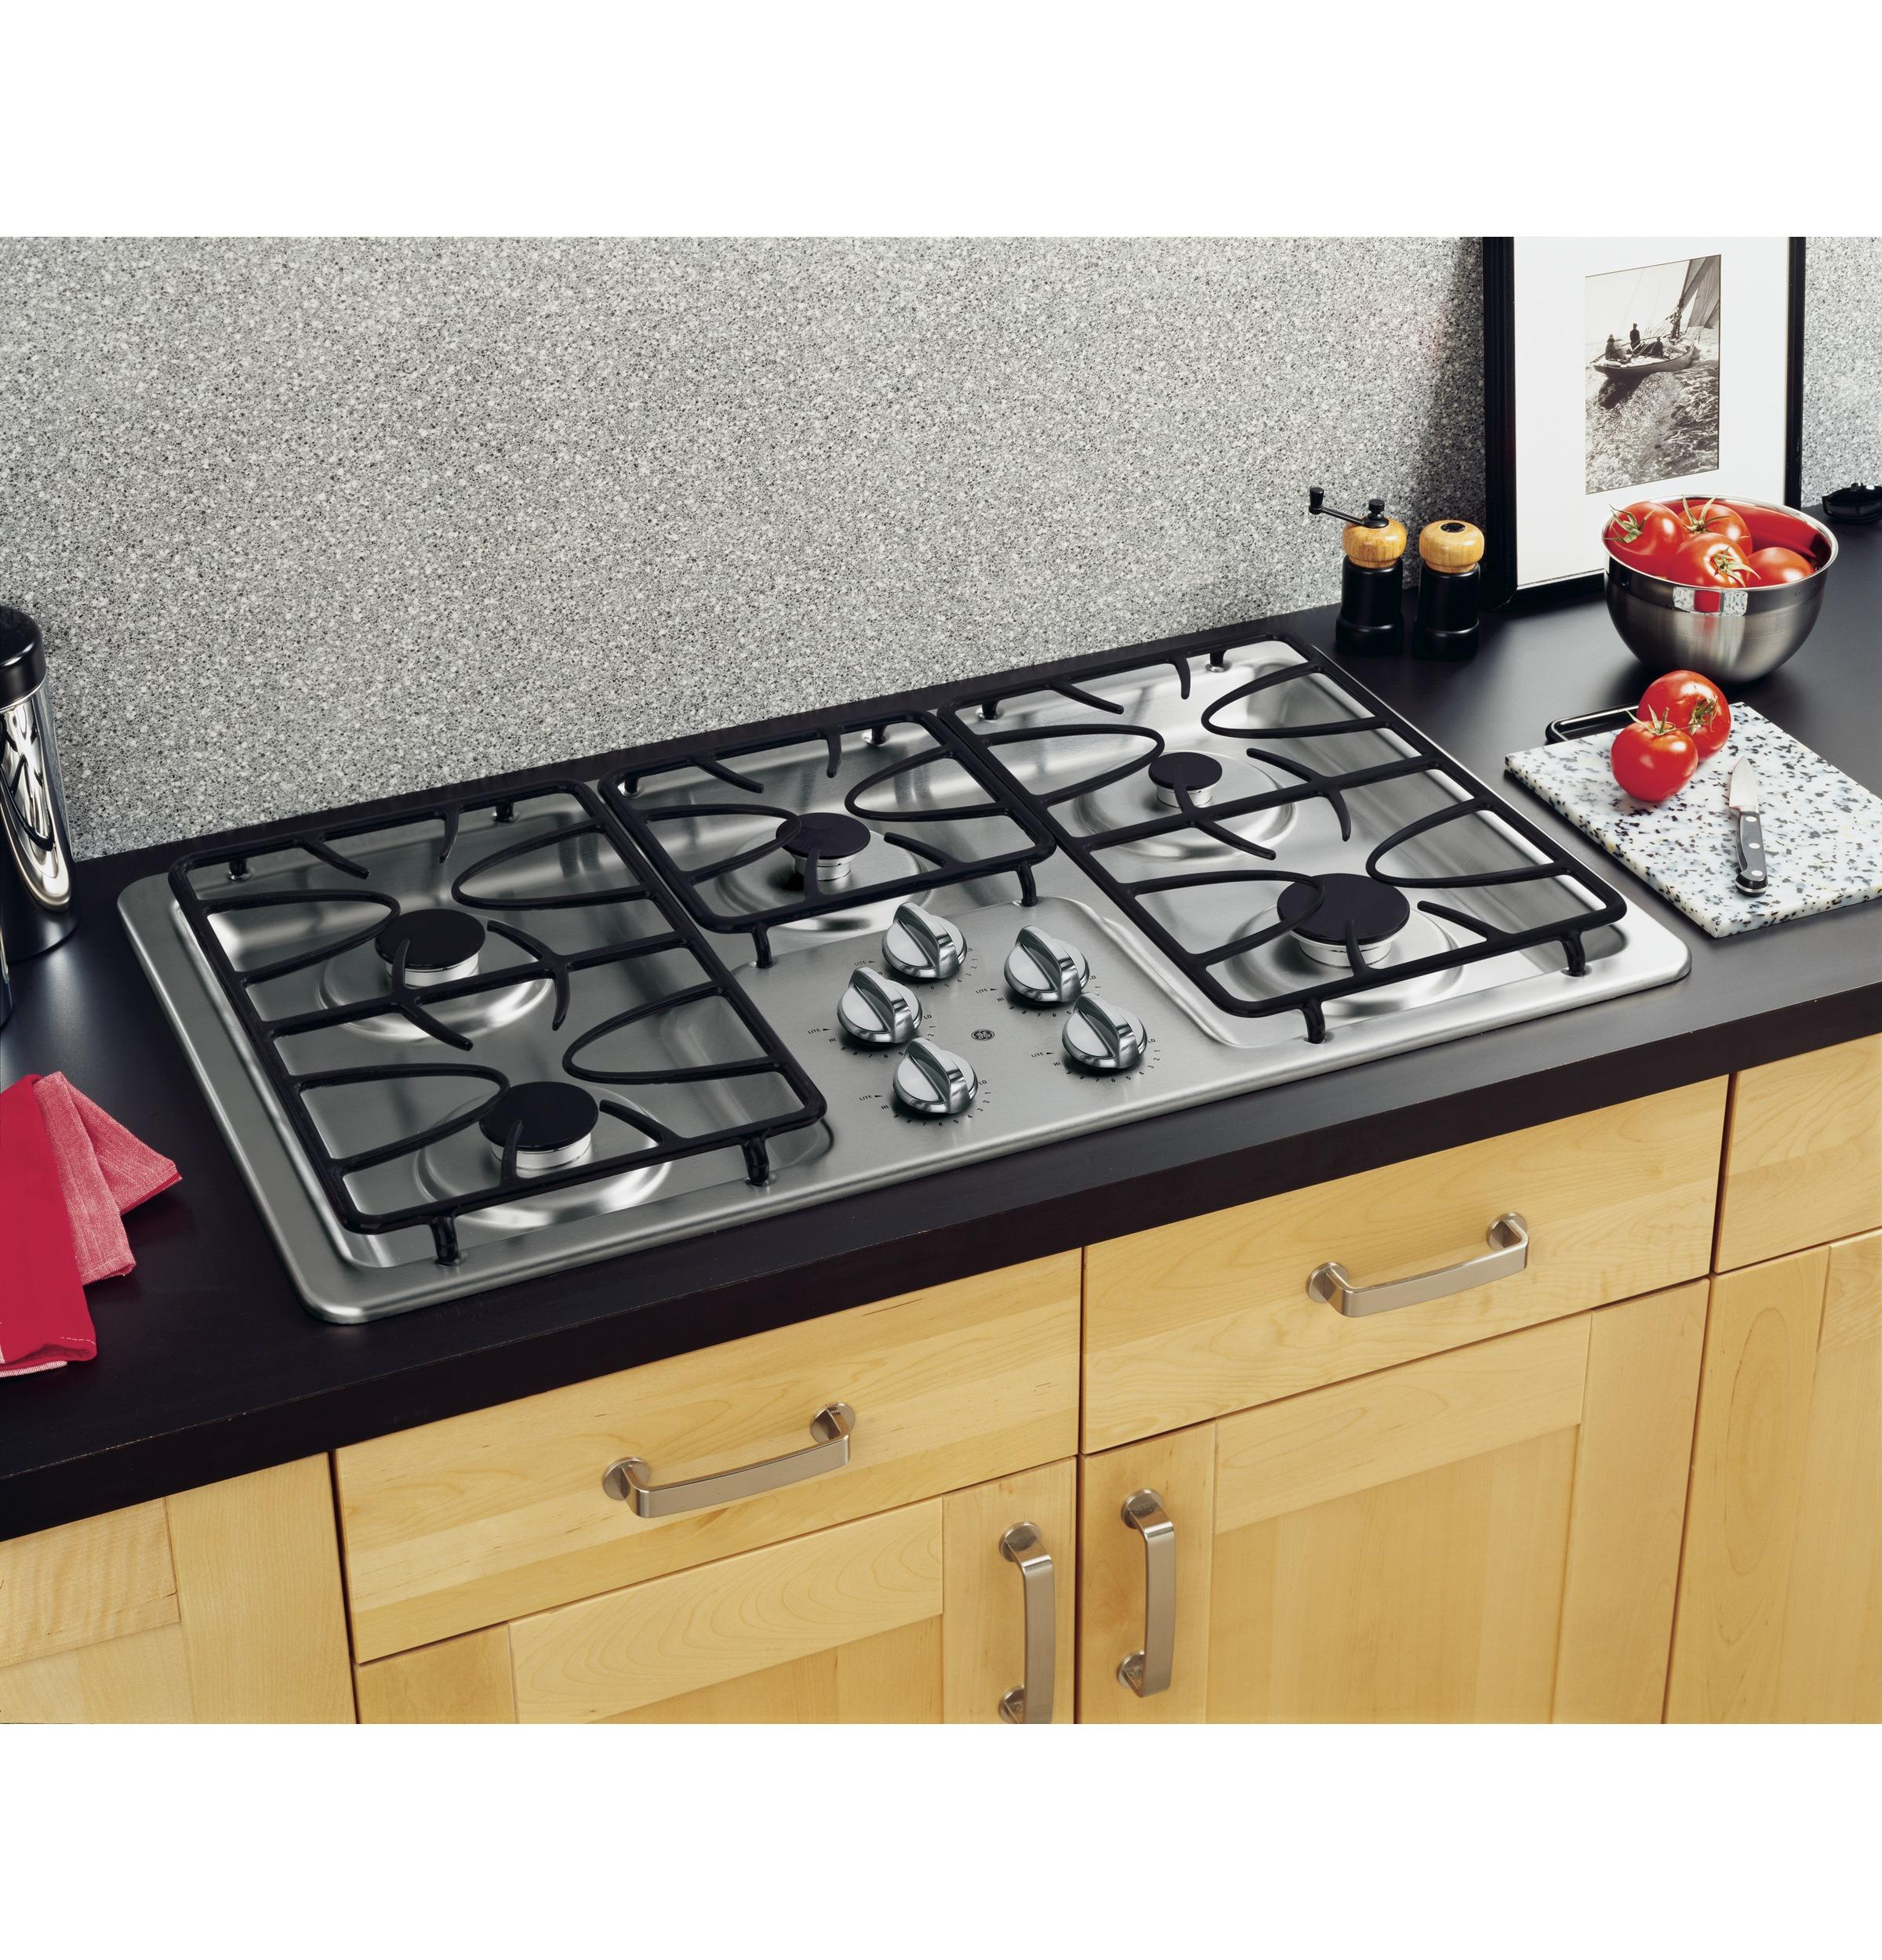 Cooktop Gas Stoves Jgp633setss General Electric